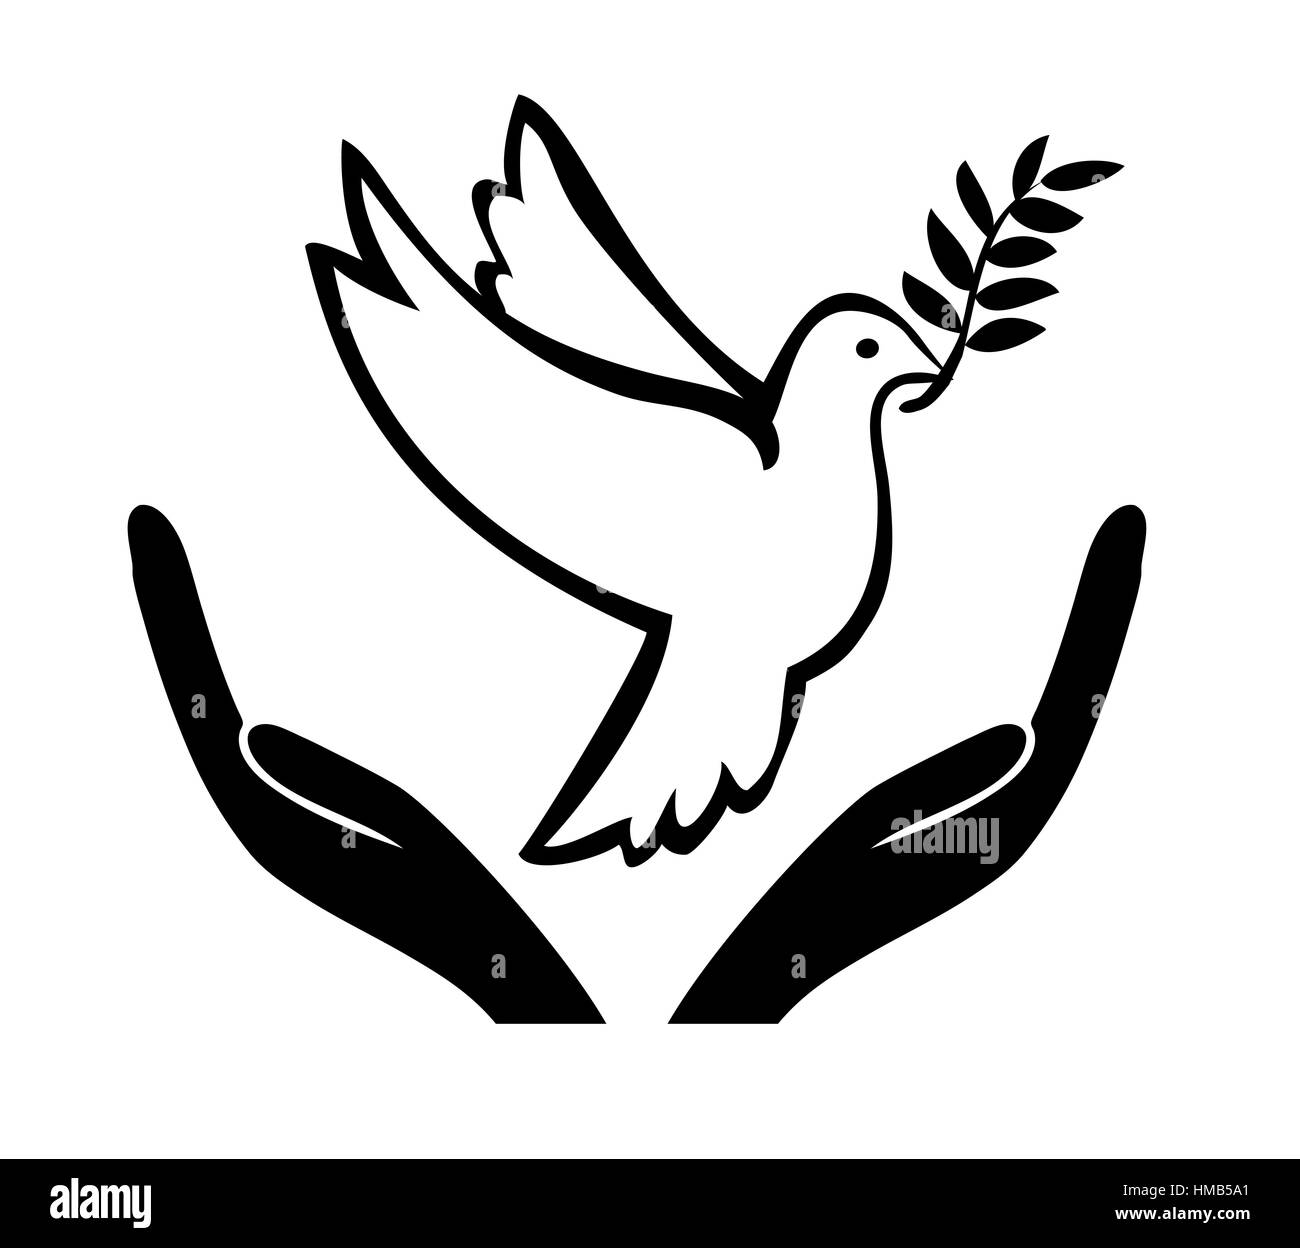 Symbol and appeal to achieve a peaceful solution stock photo symbol and appeal to achieve a peaceful solution buycottarizona Choice Image